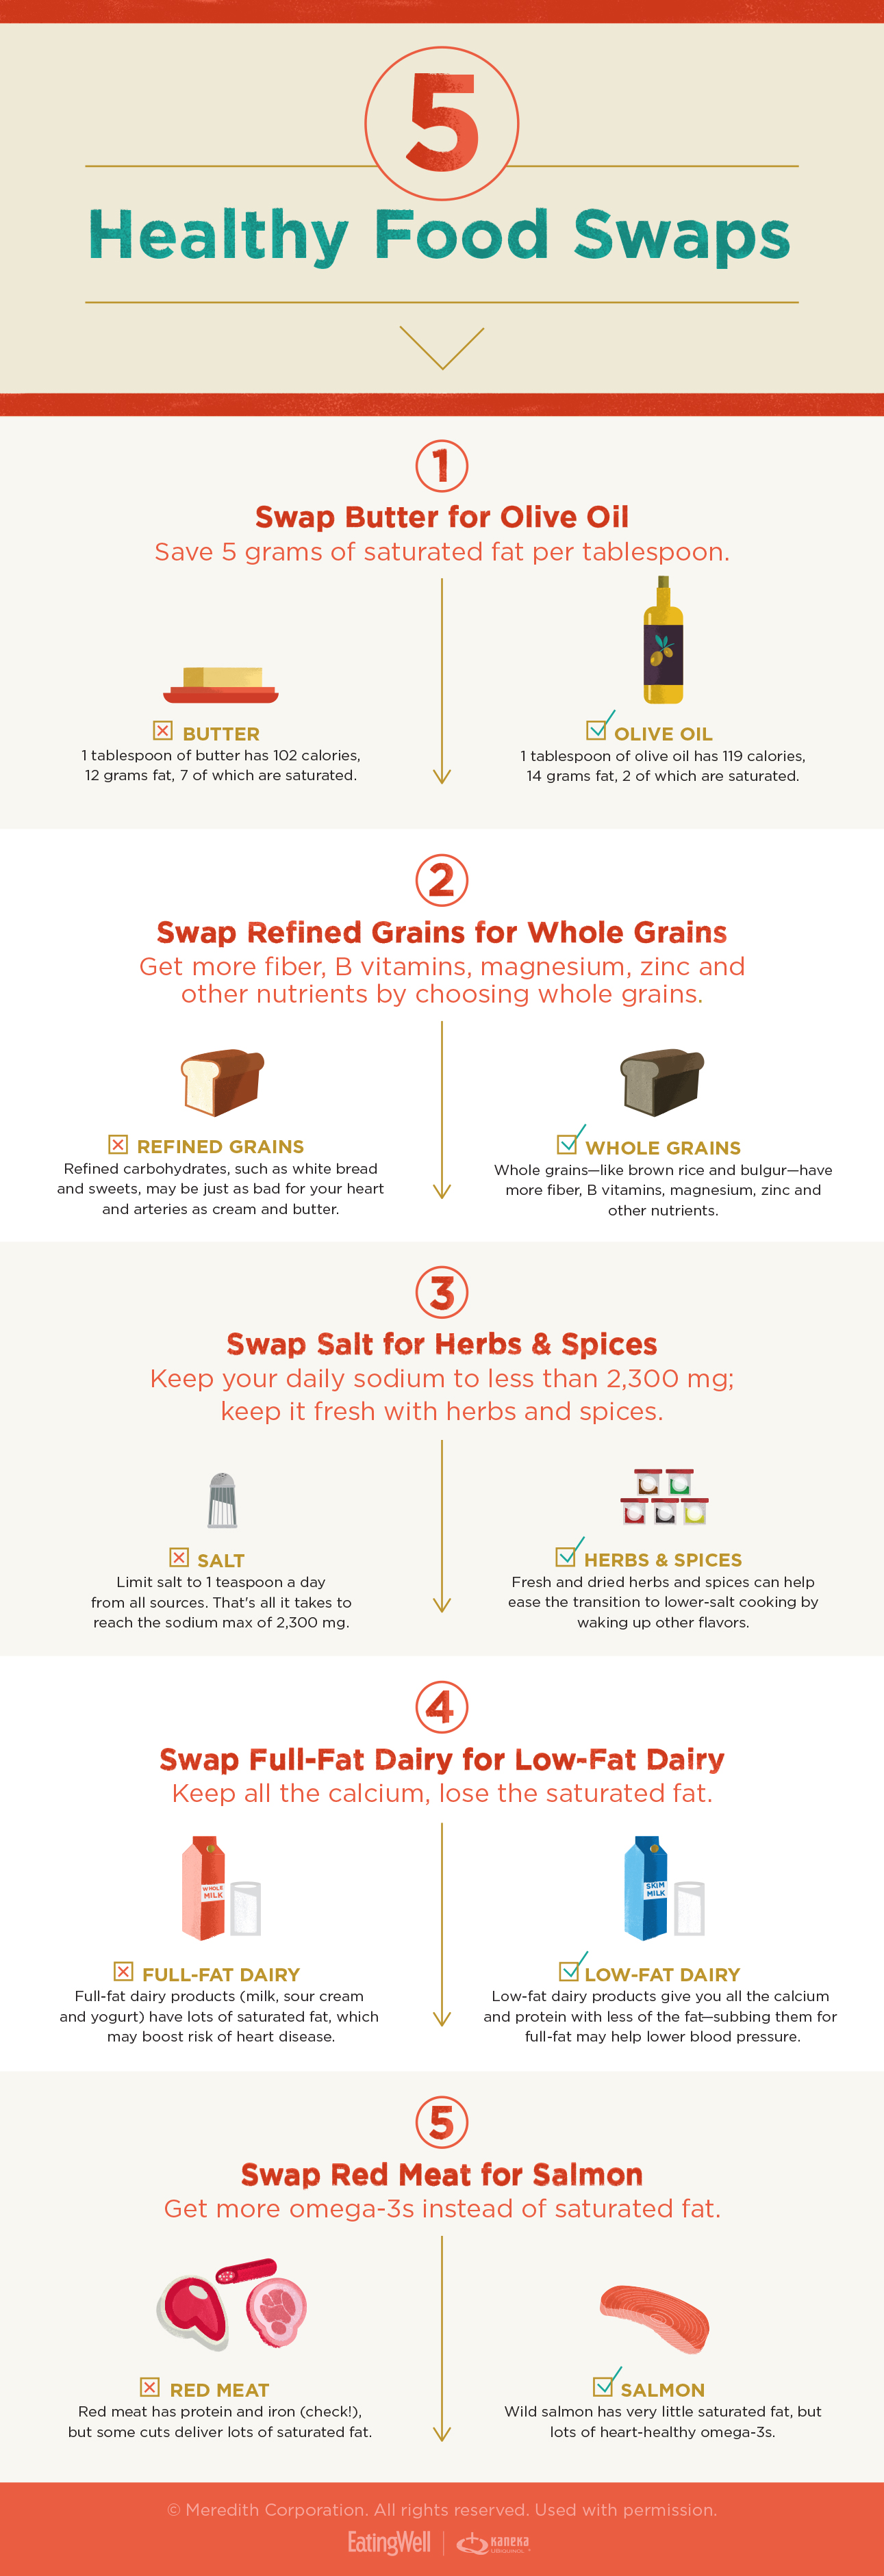 5 Healthy Food Swaps Infographic